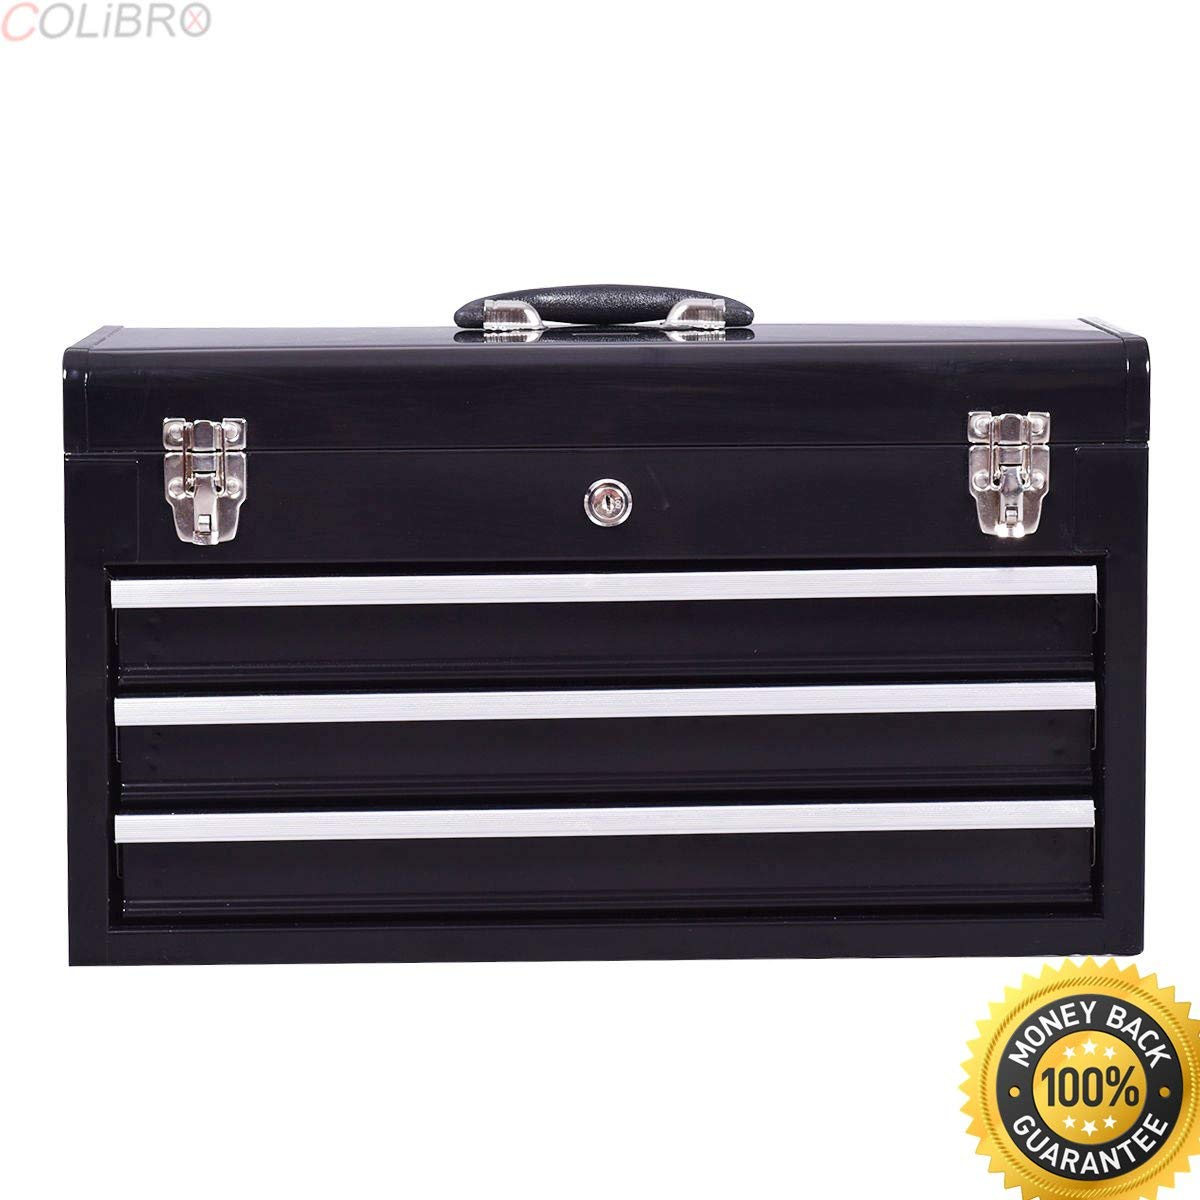 cdb167bc71b Get Quotations · COLIBROX--New Portable Tool Chest Box Storage Cabinet  Garage Mechanic Organizer 3 Drawers.